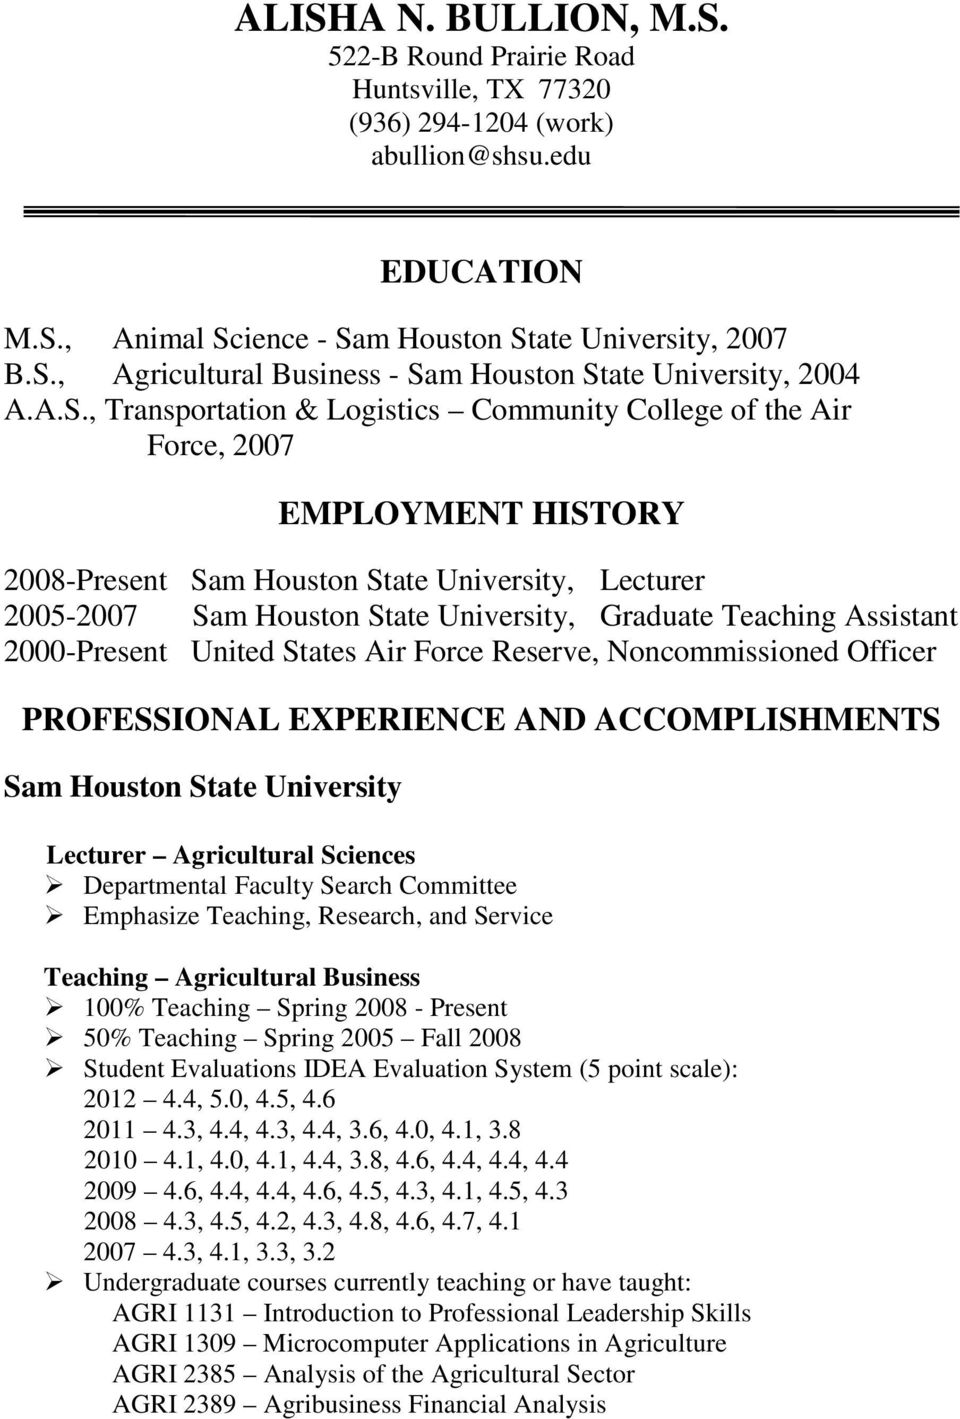 Teaching Assistant 2000-Present United States Air Force Reserve, Noncommissioned Officer PROFESSIONAL EXPERIENCE AND ACCOMPLISHMENTS Sam Houston State University Lecturer Agricultural Sciences